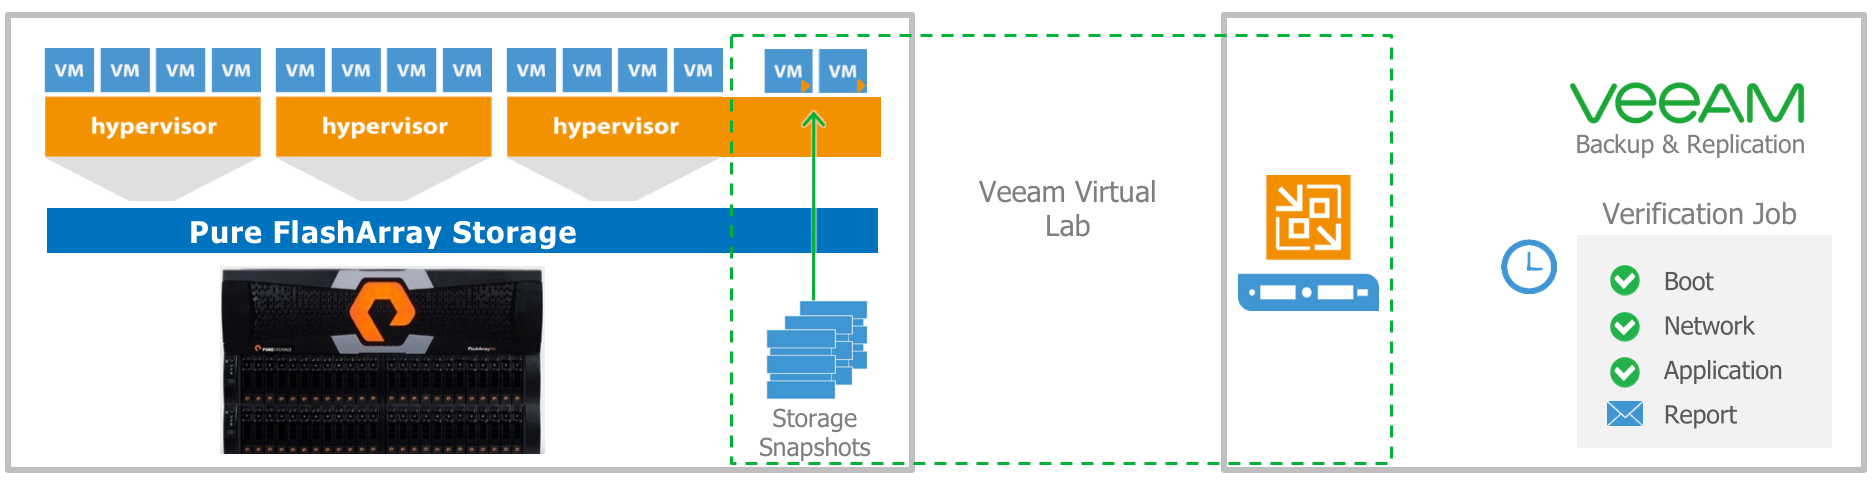 Baking Clouds - New Snapshot Integration for Pure Storage now available for Veeam Software